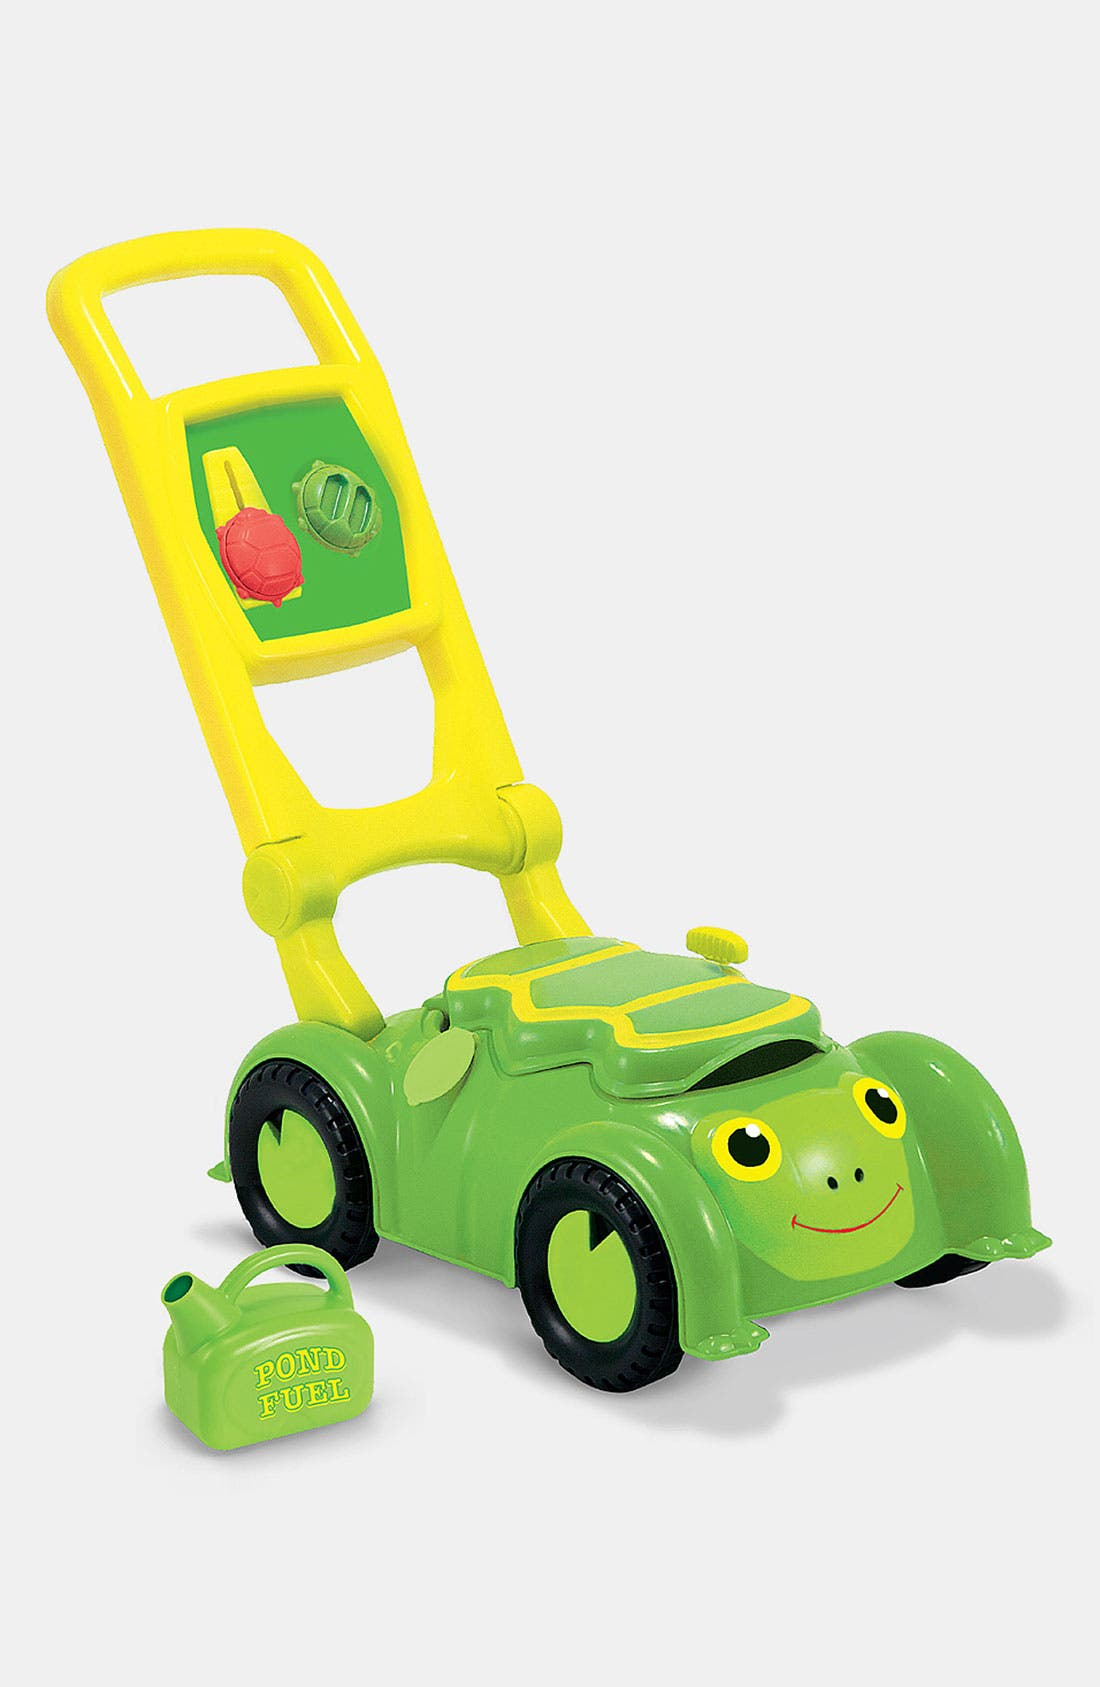 'Tootle Turtle' Lawn Mower Toy,                         Main,                         color, None